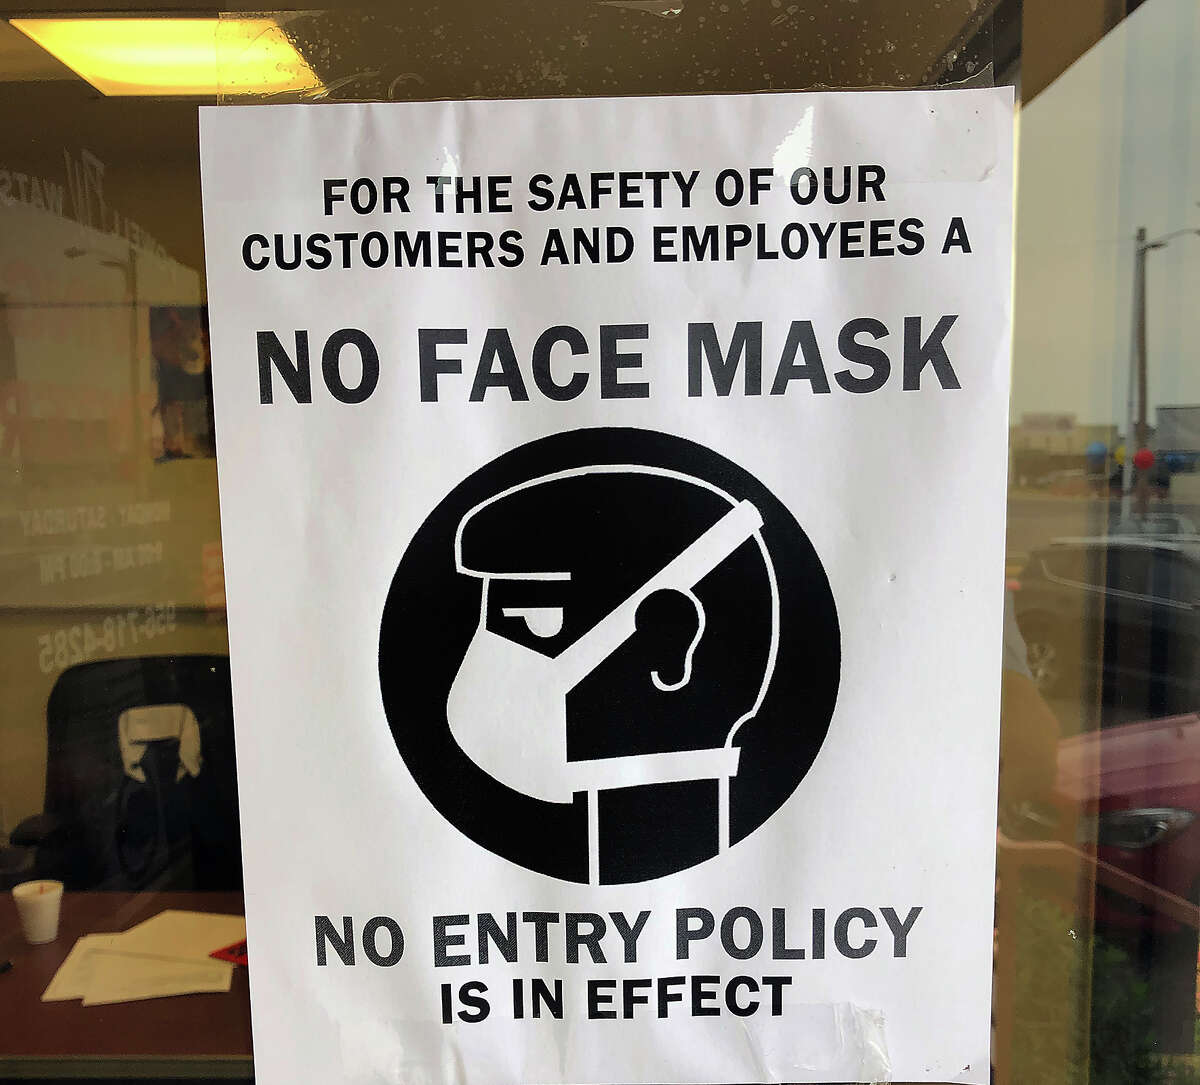 """In this file photo, Powell Watson Savings Center is shown with a sign enforcing a """"No Face Mask, No Entry Policy"""" for the safety of their employees and customers."""